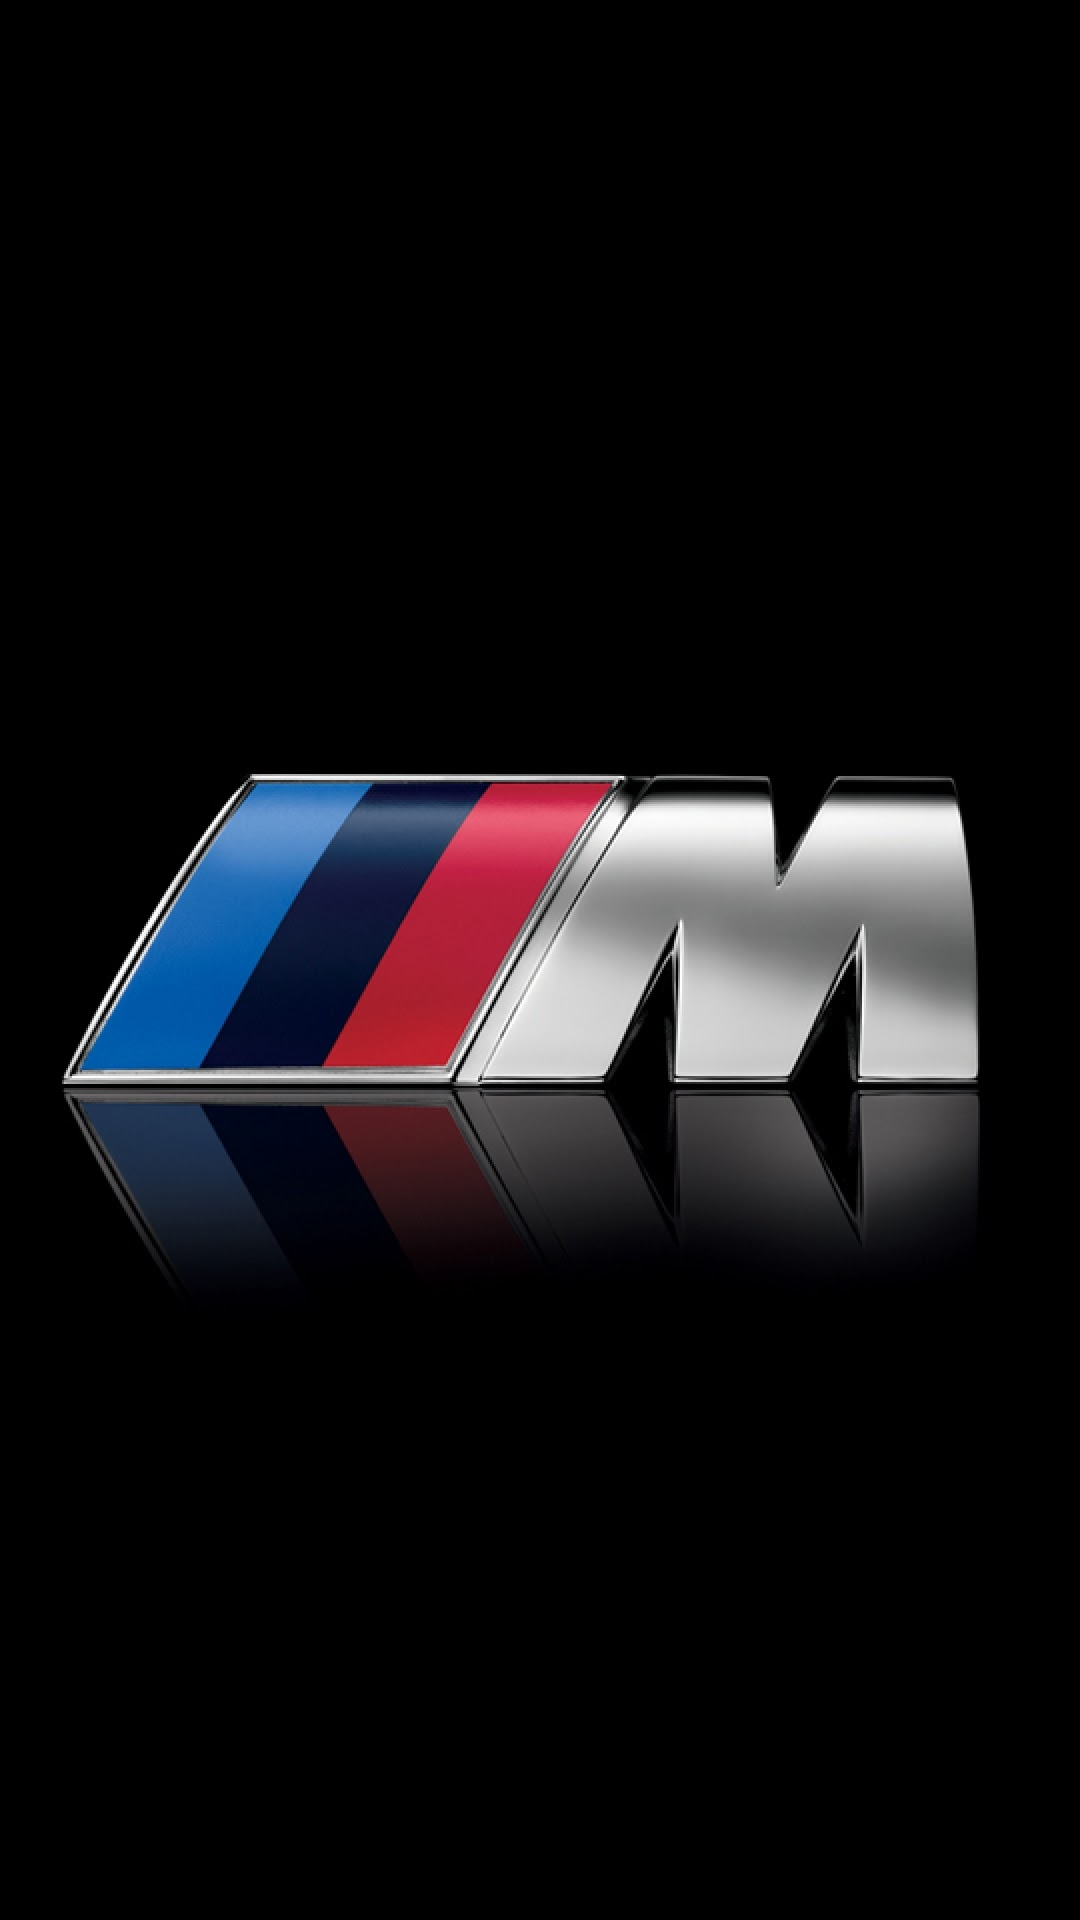 click here to download 1080x1920 pixel bmw m logo android best wallpaper